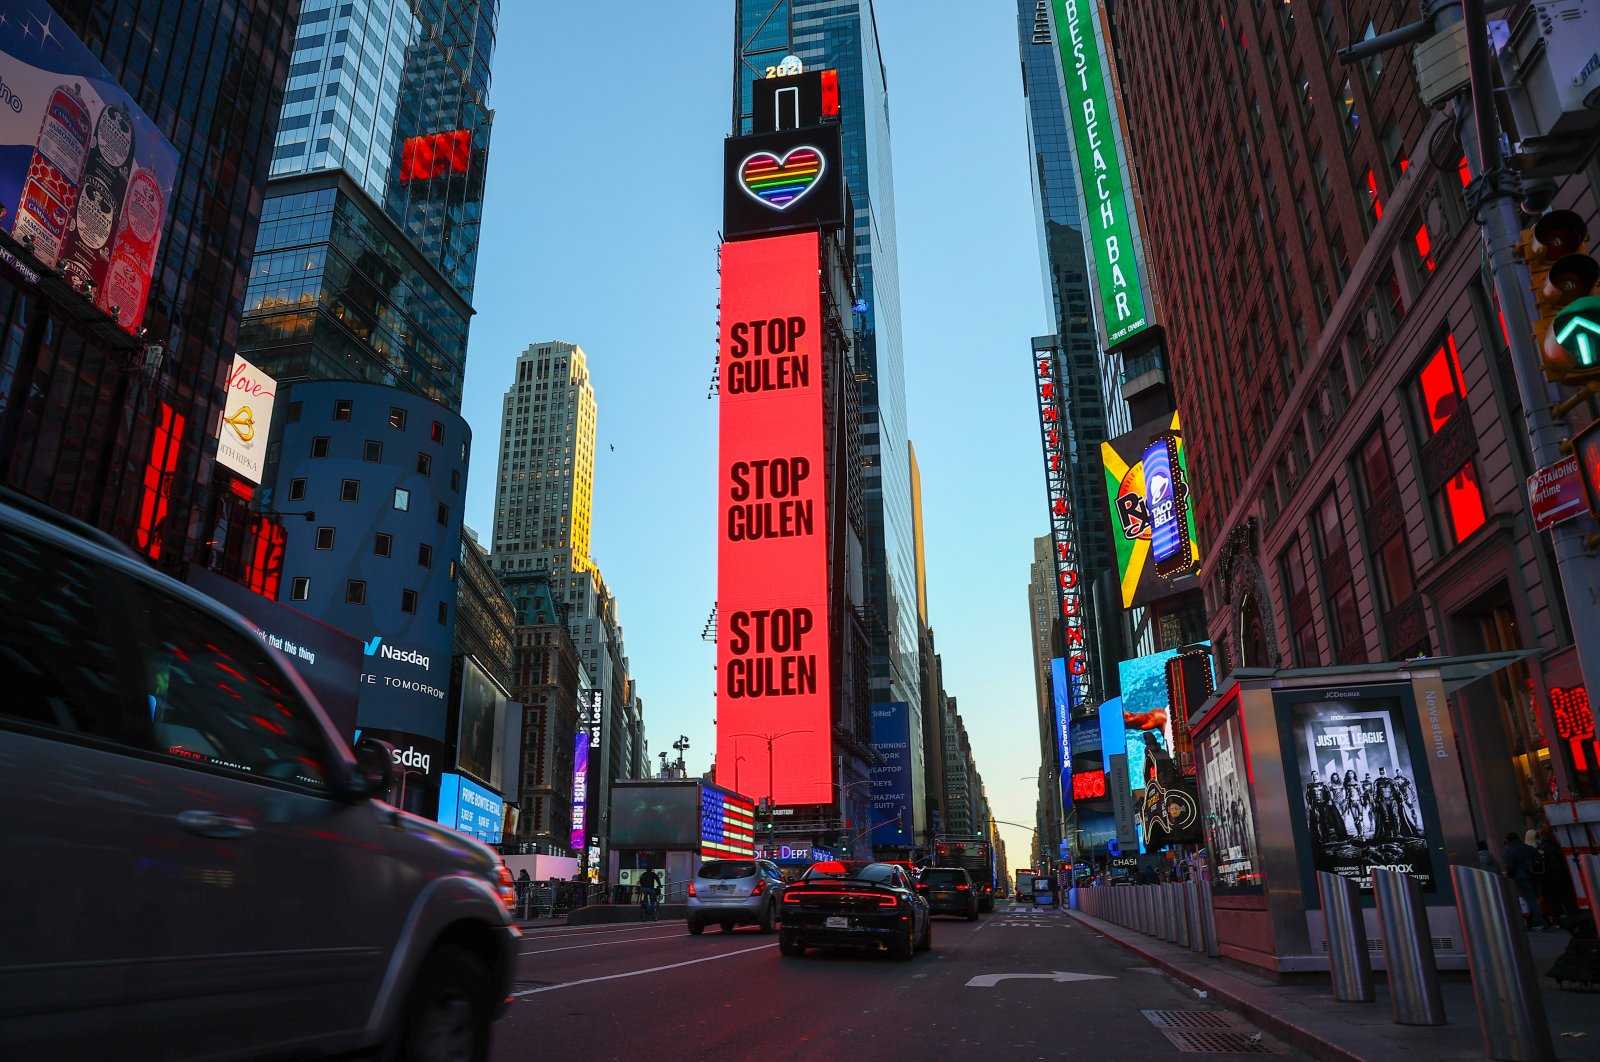 """The """"Stop Gülen"""" ad is seen on digital billboards in Time Square, New York, U.S., March 13, 2021 (AA Photo)"""